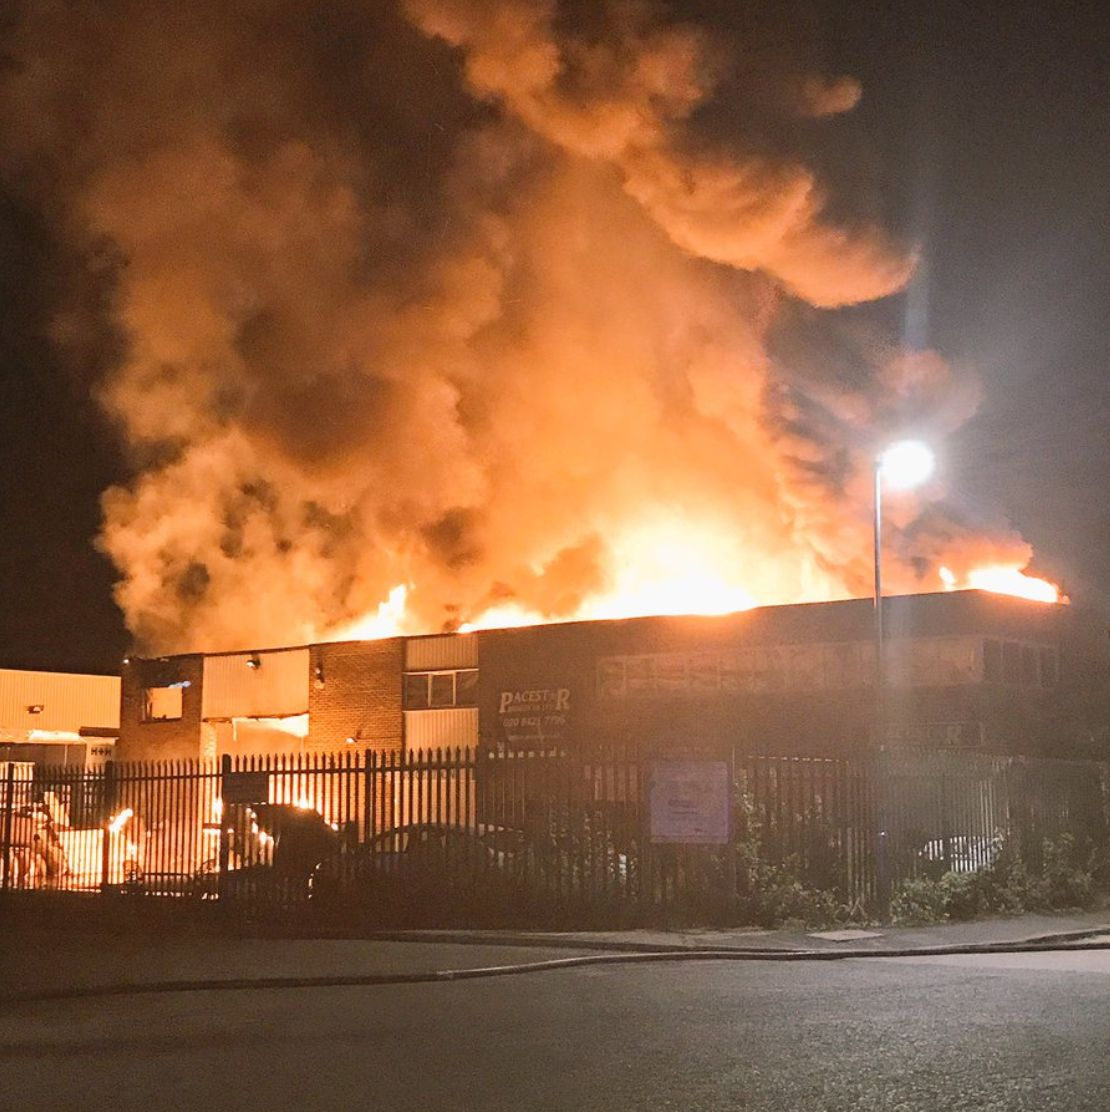 Households evacuated and rail services disrupted after warehouse fire in Harrow